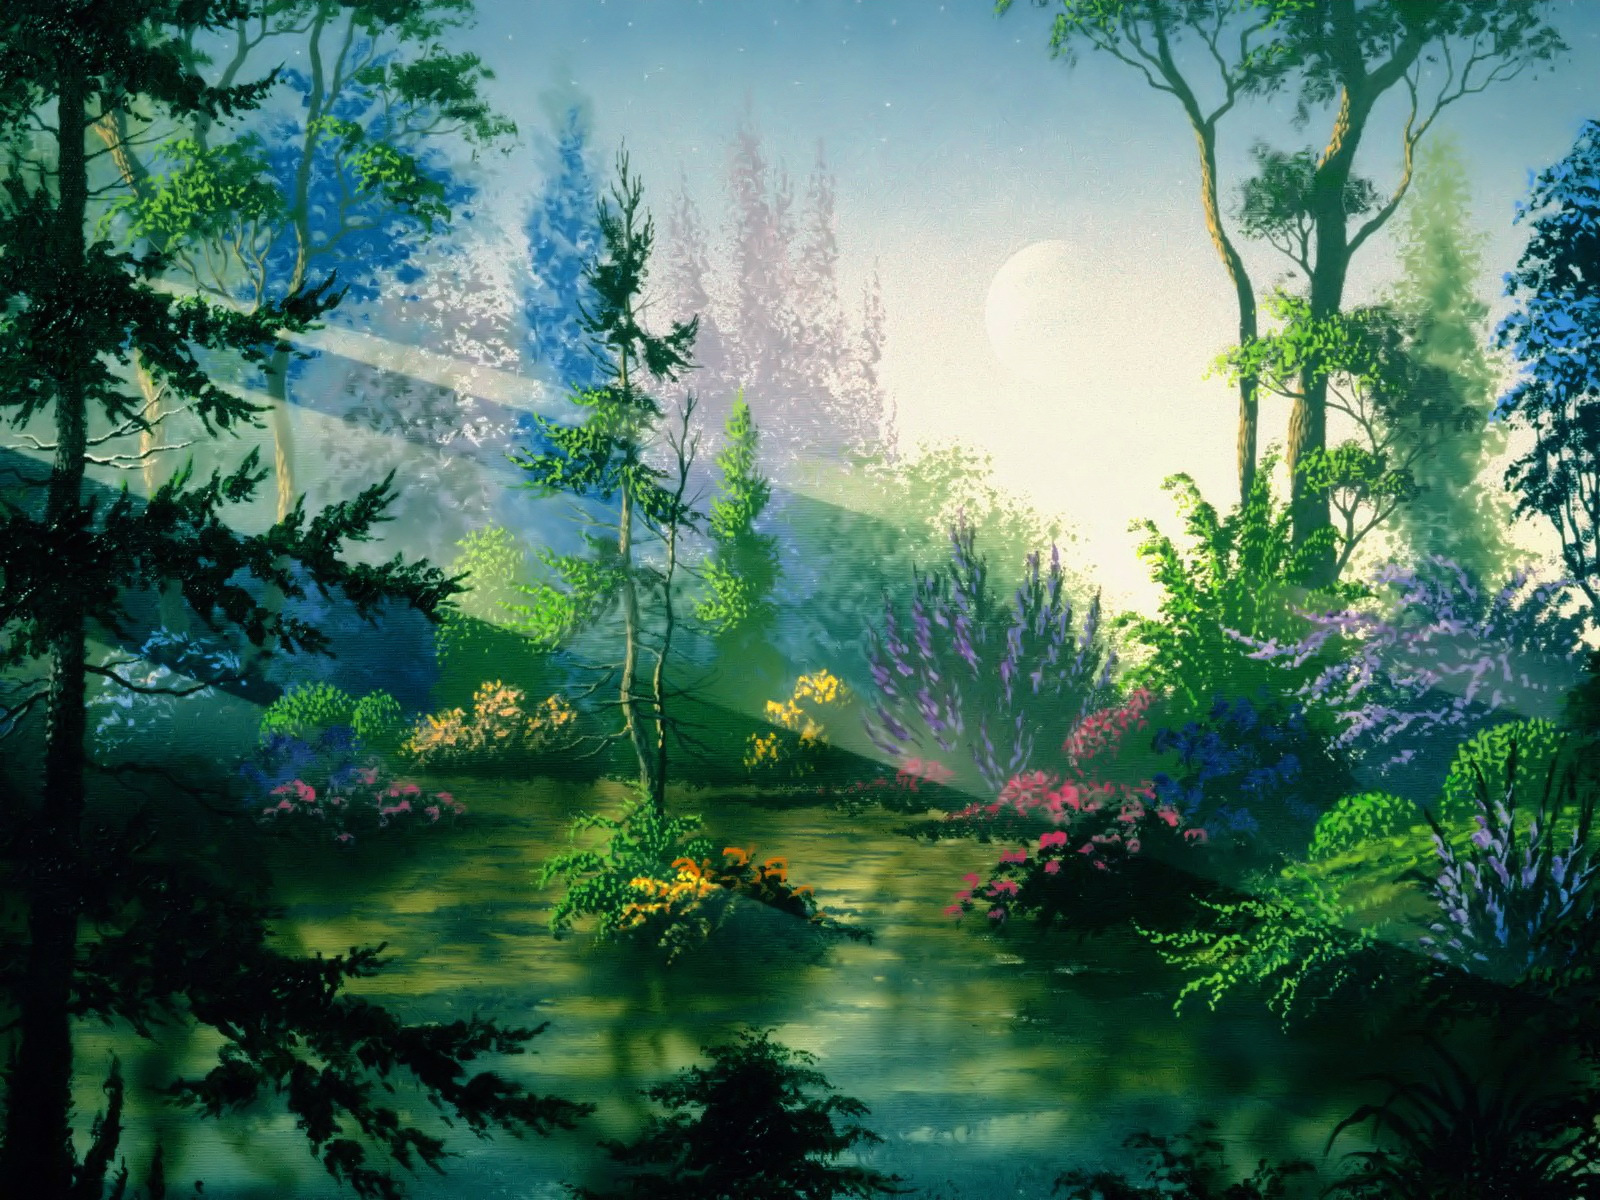 Fantasy forest wallpapers 10621 1600x1200